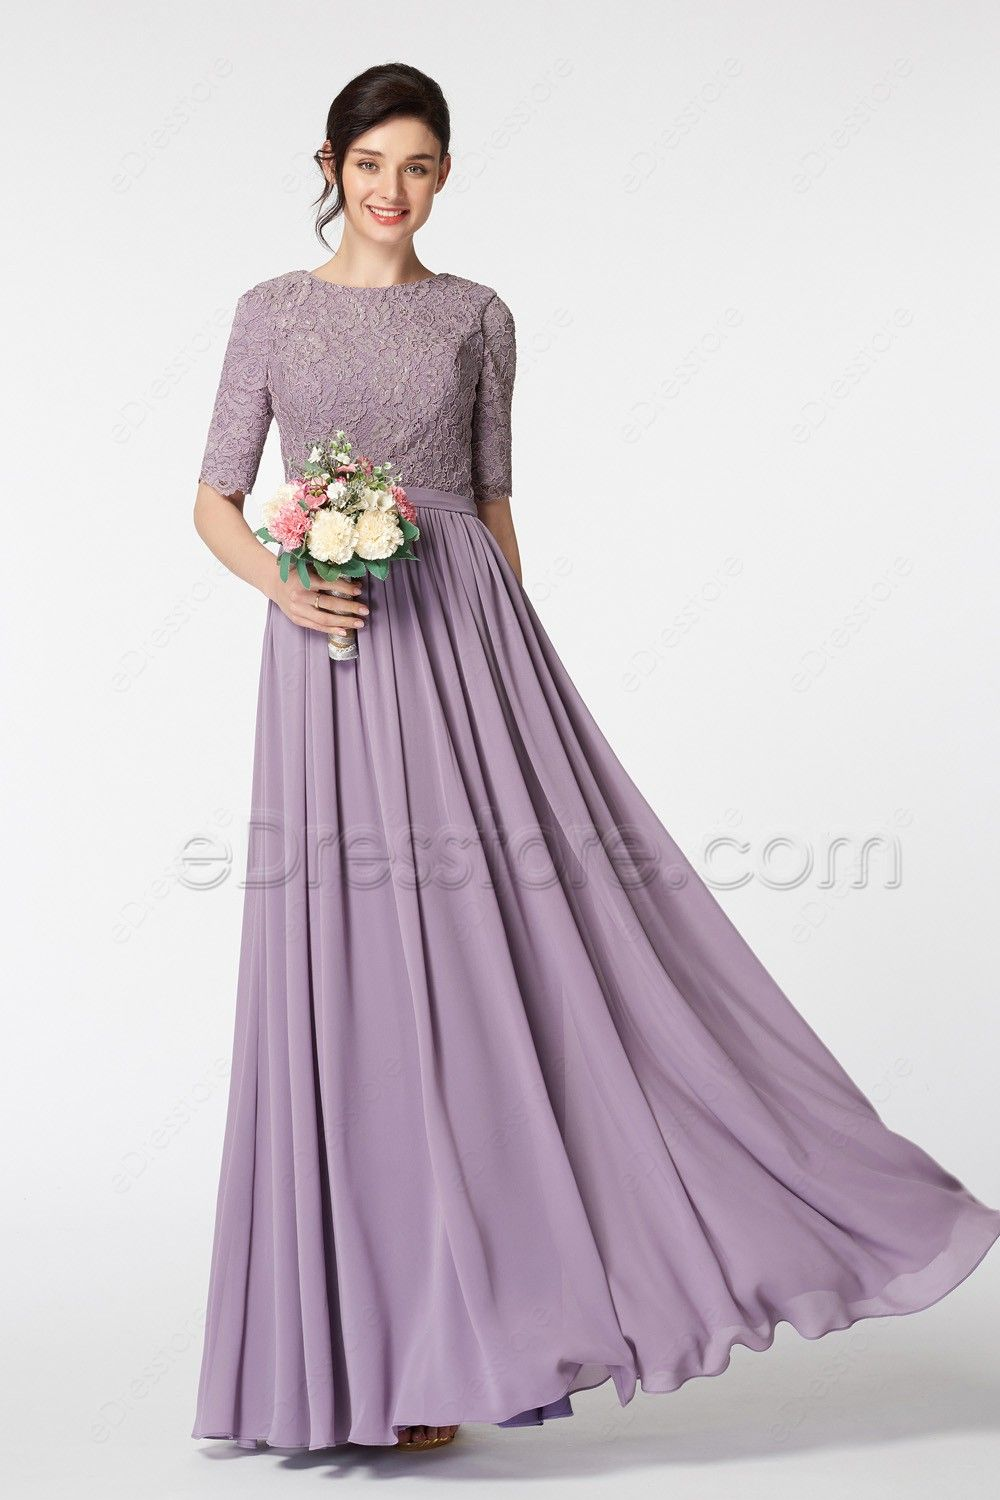 Wisteria purple modest bridesmaid dress with elbow sleeves wisteria purple modest bridesmaid dress with elbow sleeves ombrellifo Image collections